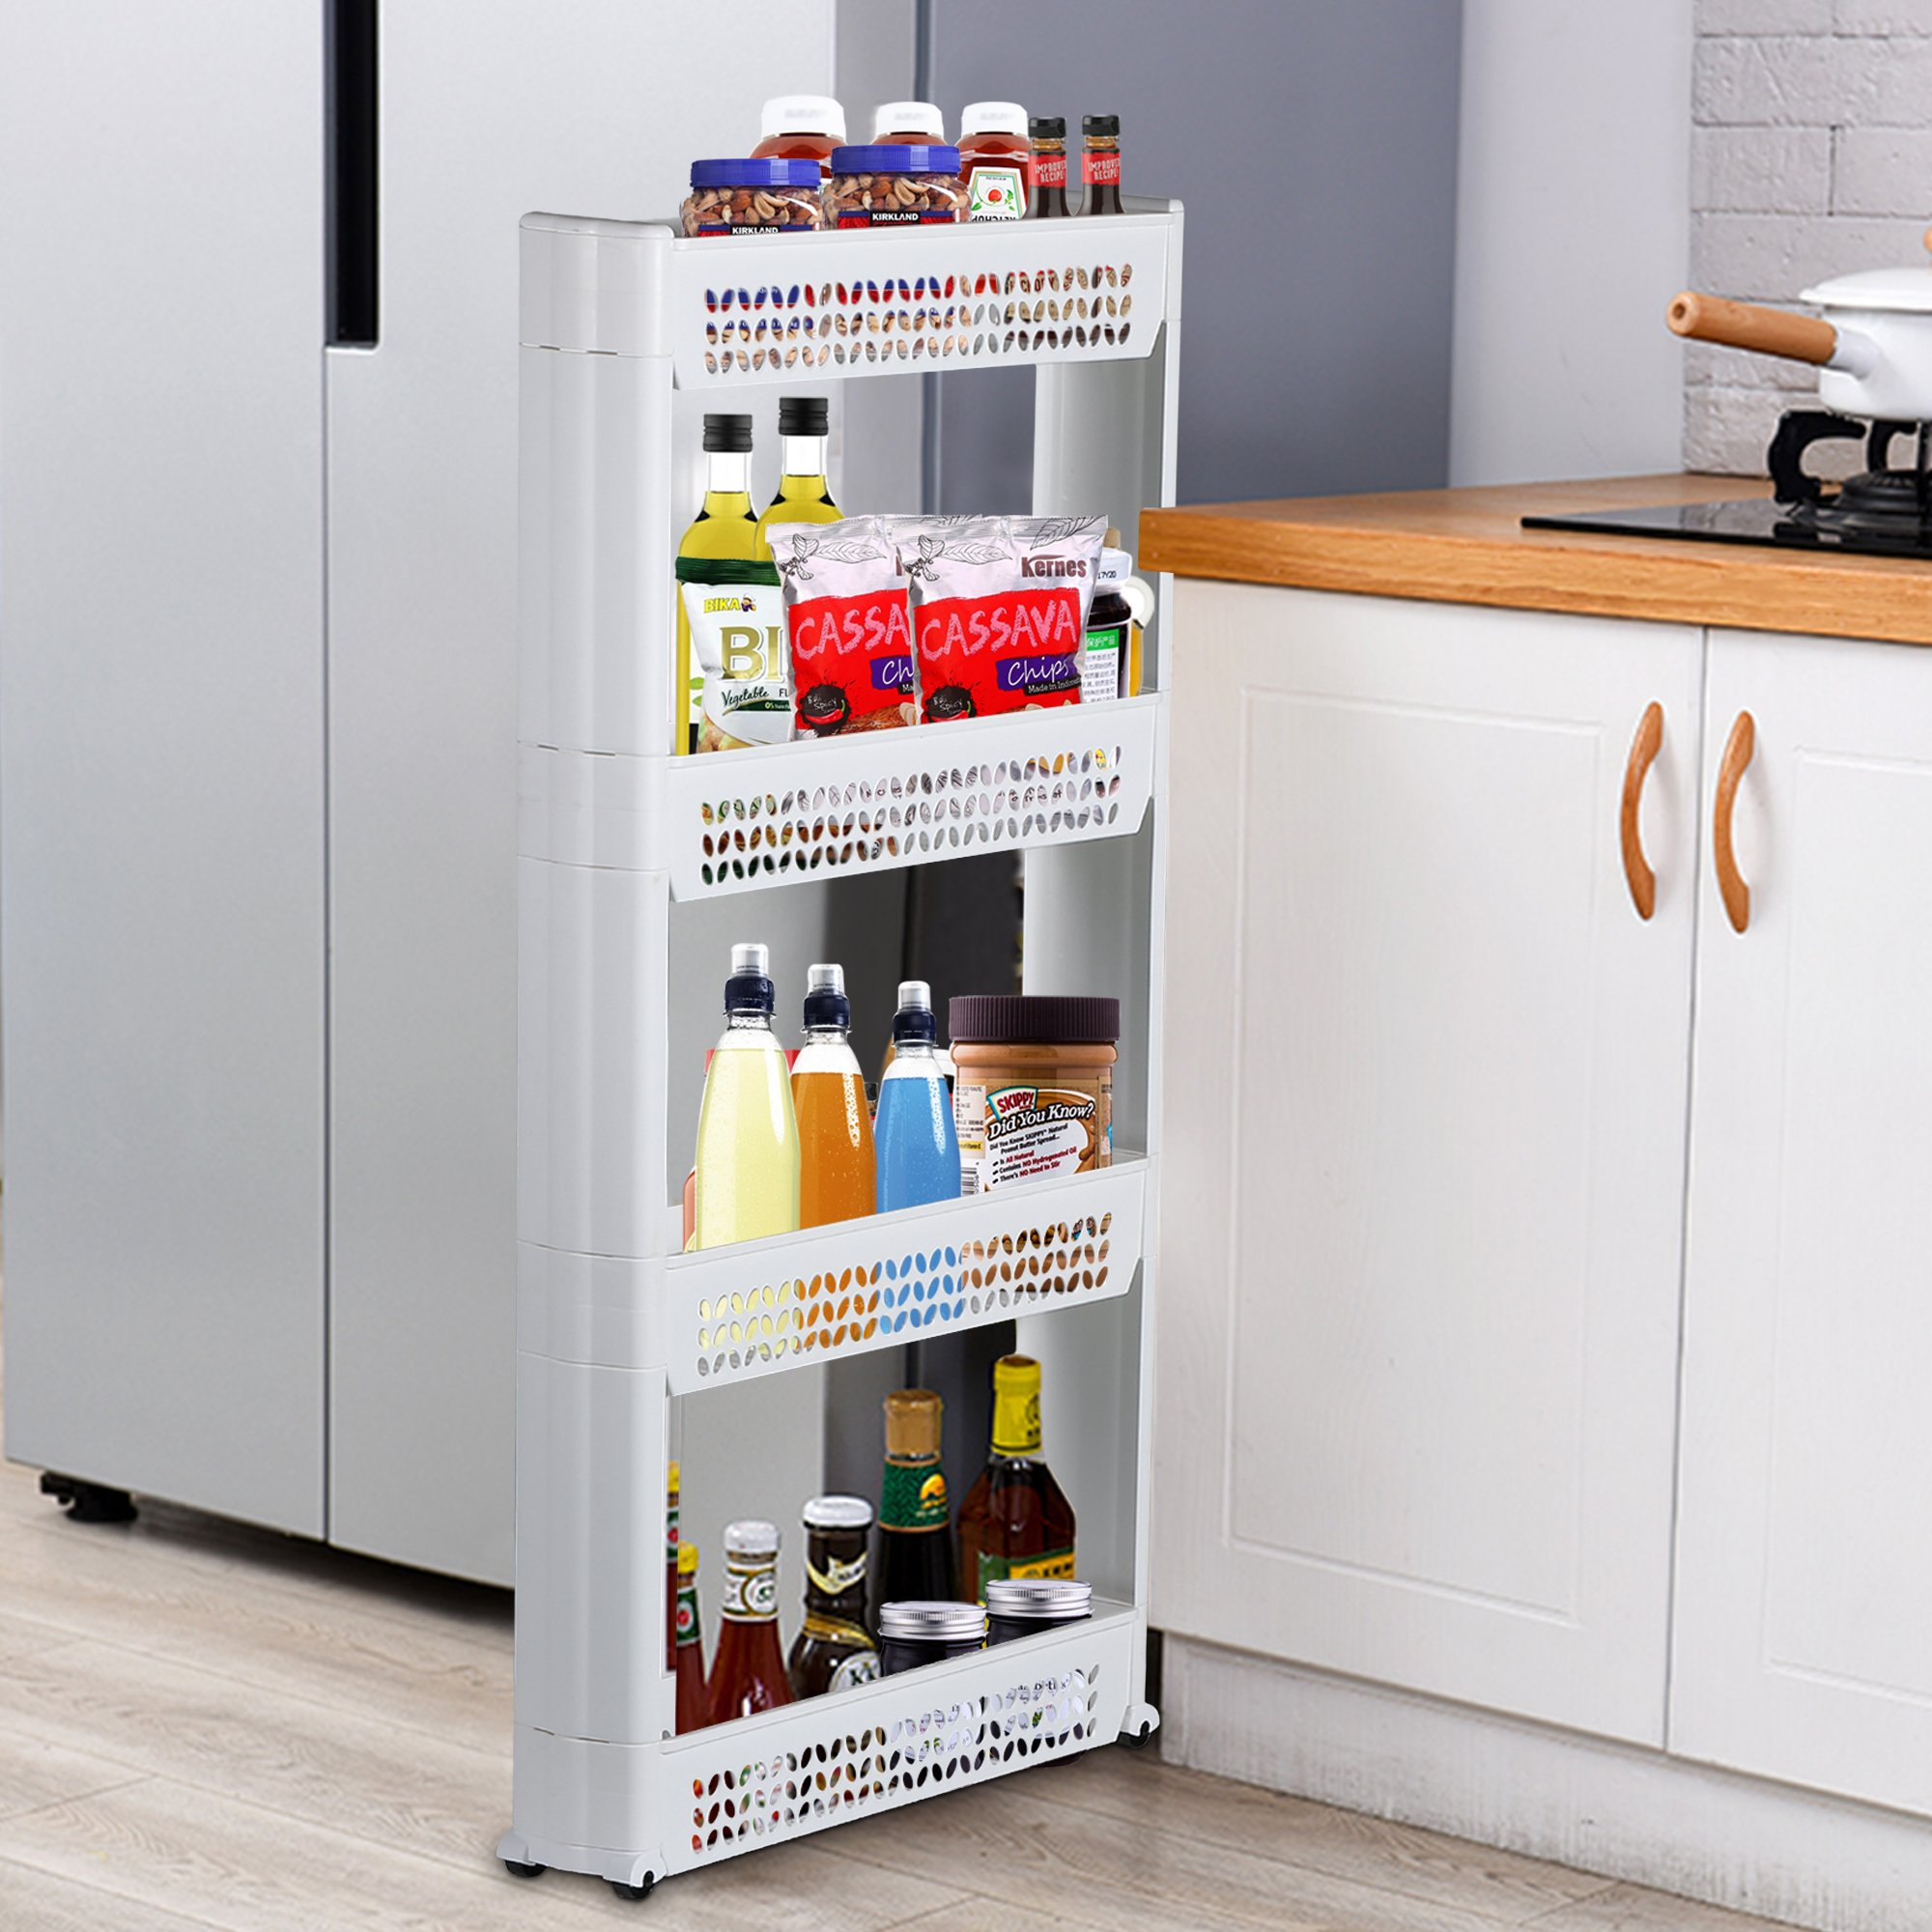 Famistar 4-Tier Gap Storage Organizer Slim Slide Out Tower Rack Shelf for Narrow Spaces,Ideal for Kitchen,Bath,Dining and Laundry Rooms